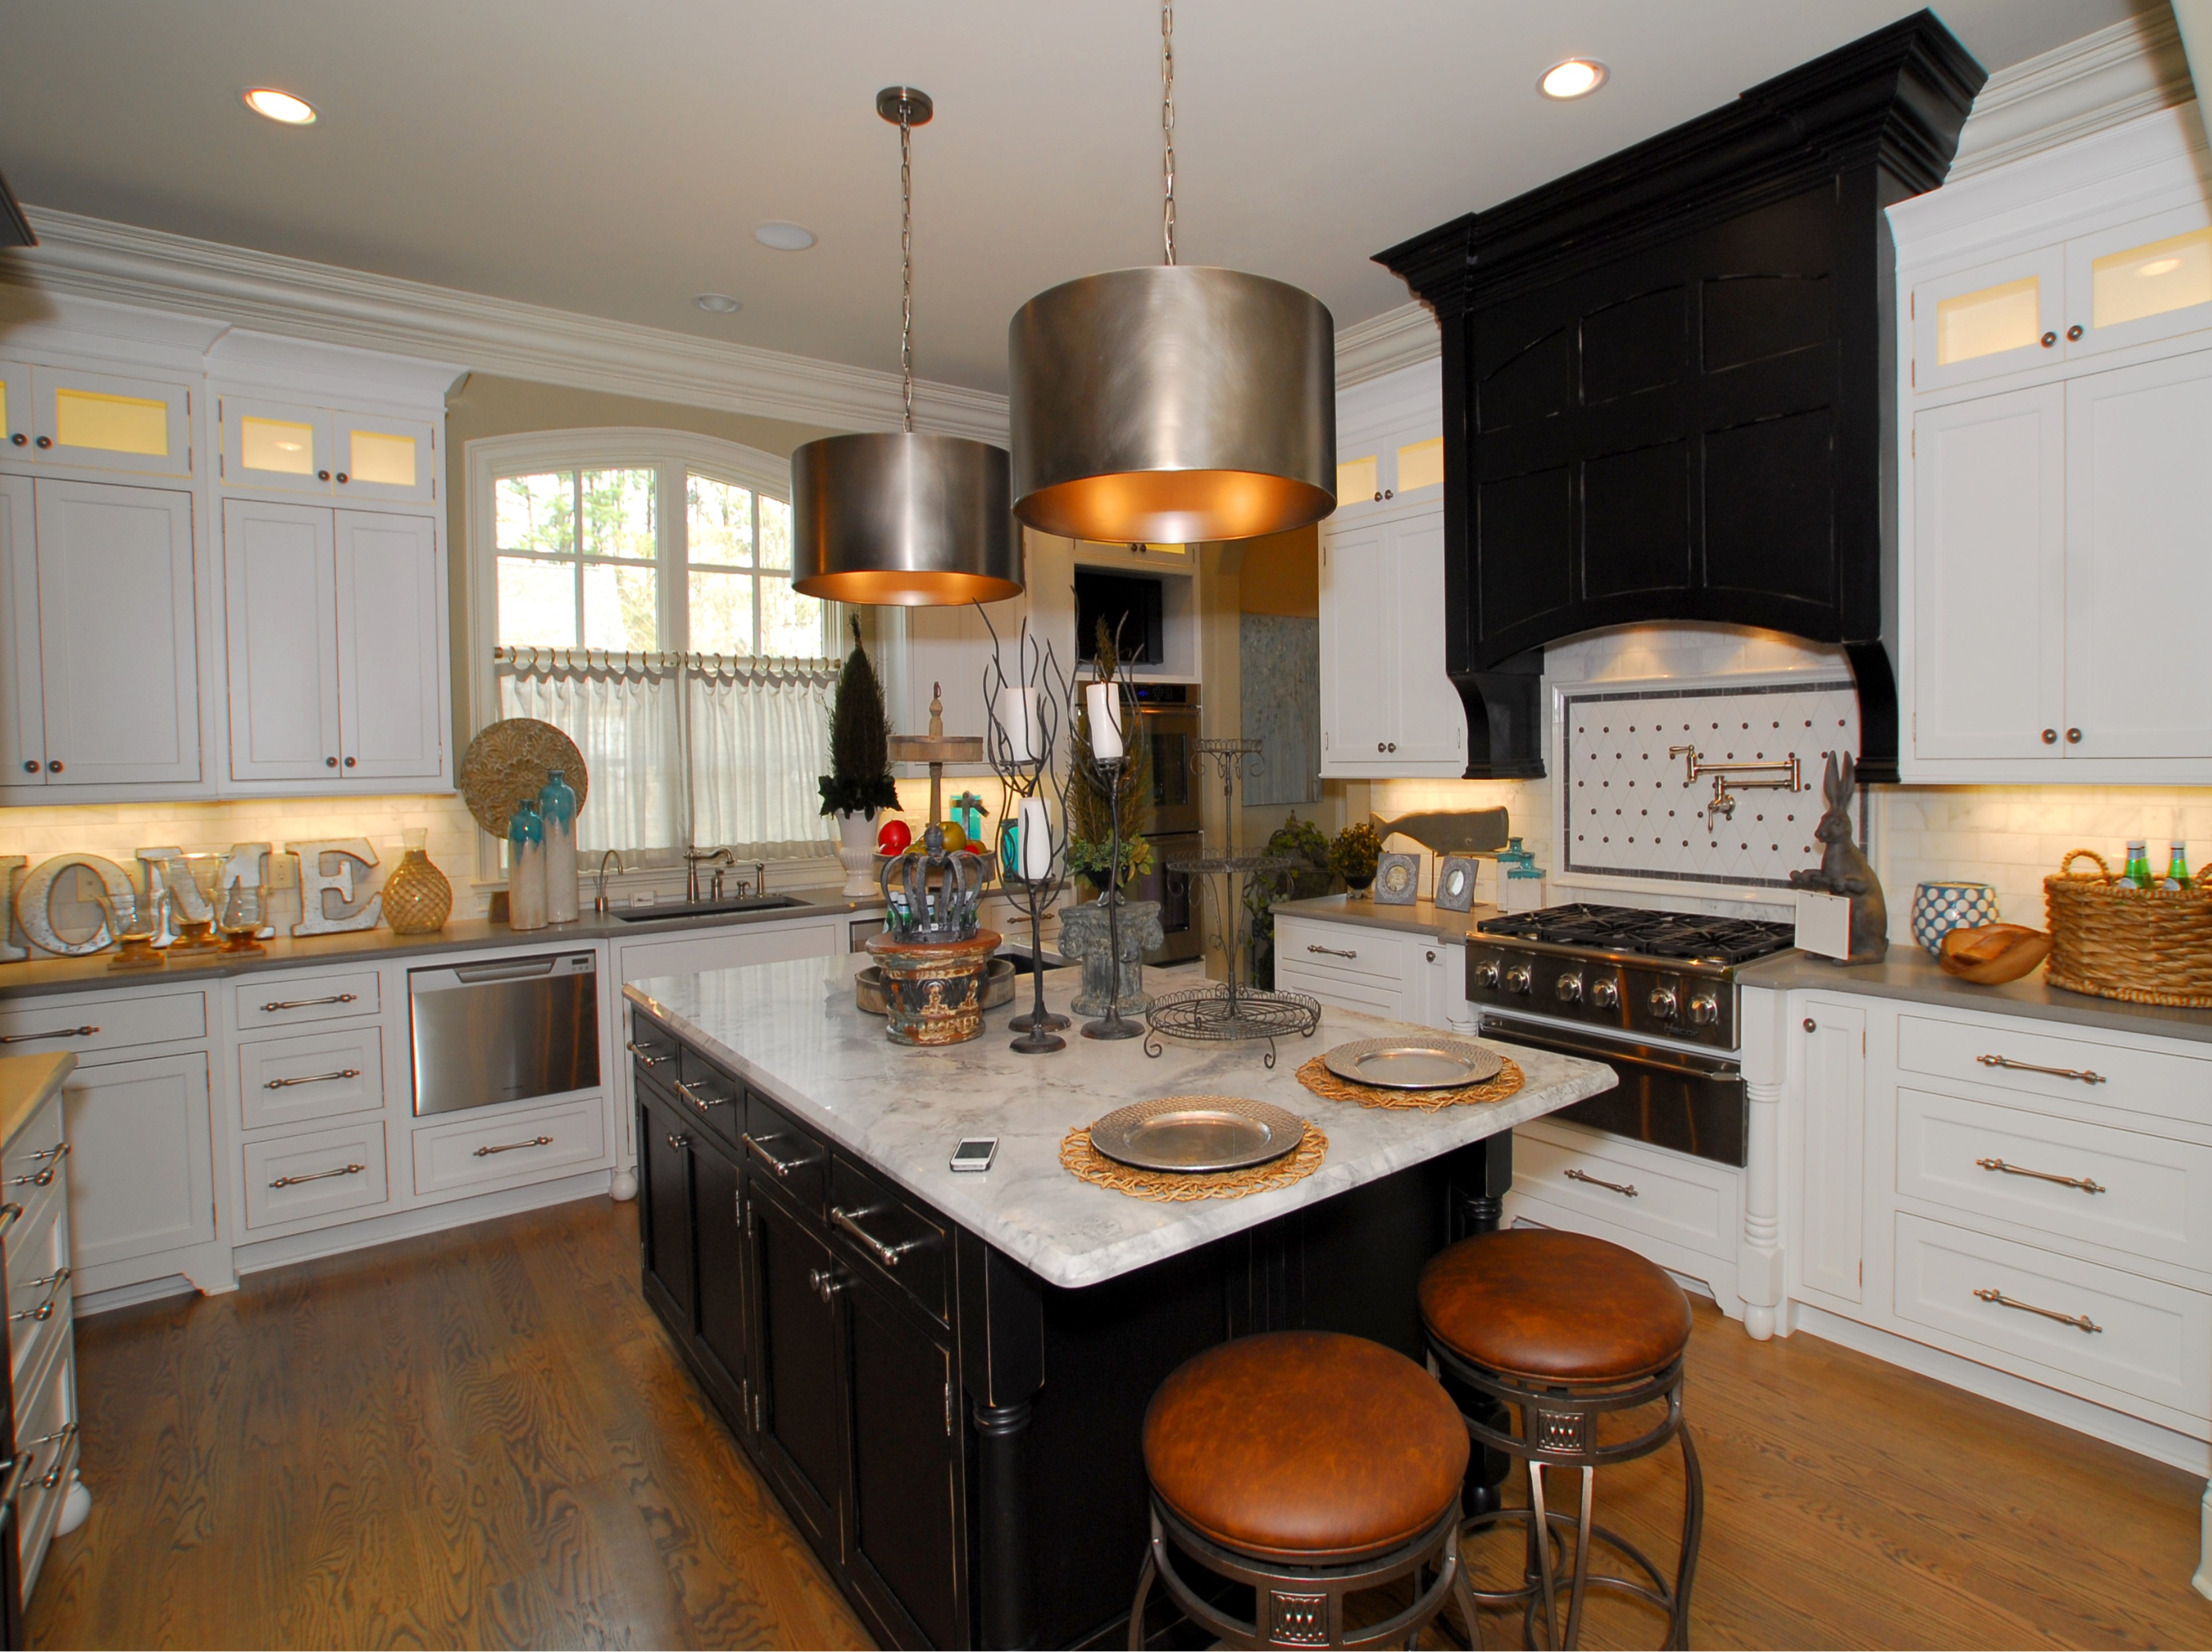 standard kitchen bath gallery knoxville kitchen remodel kitchen design